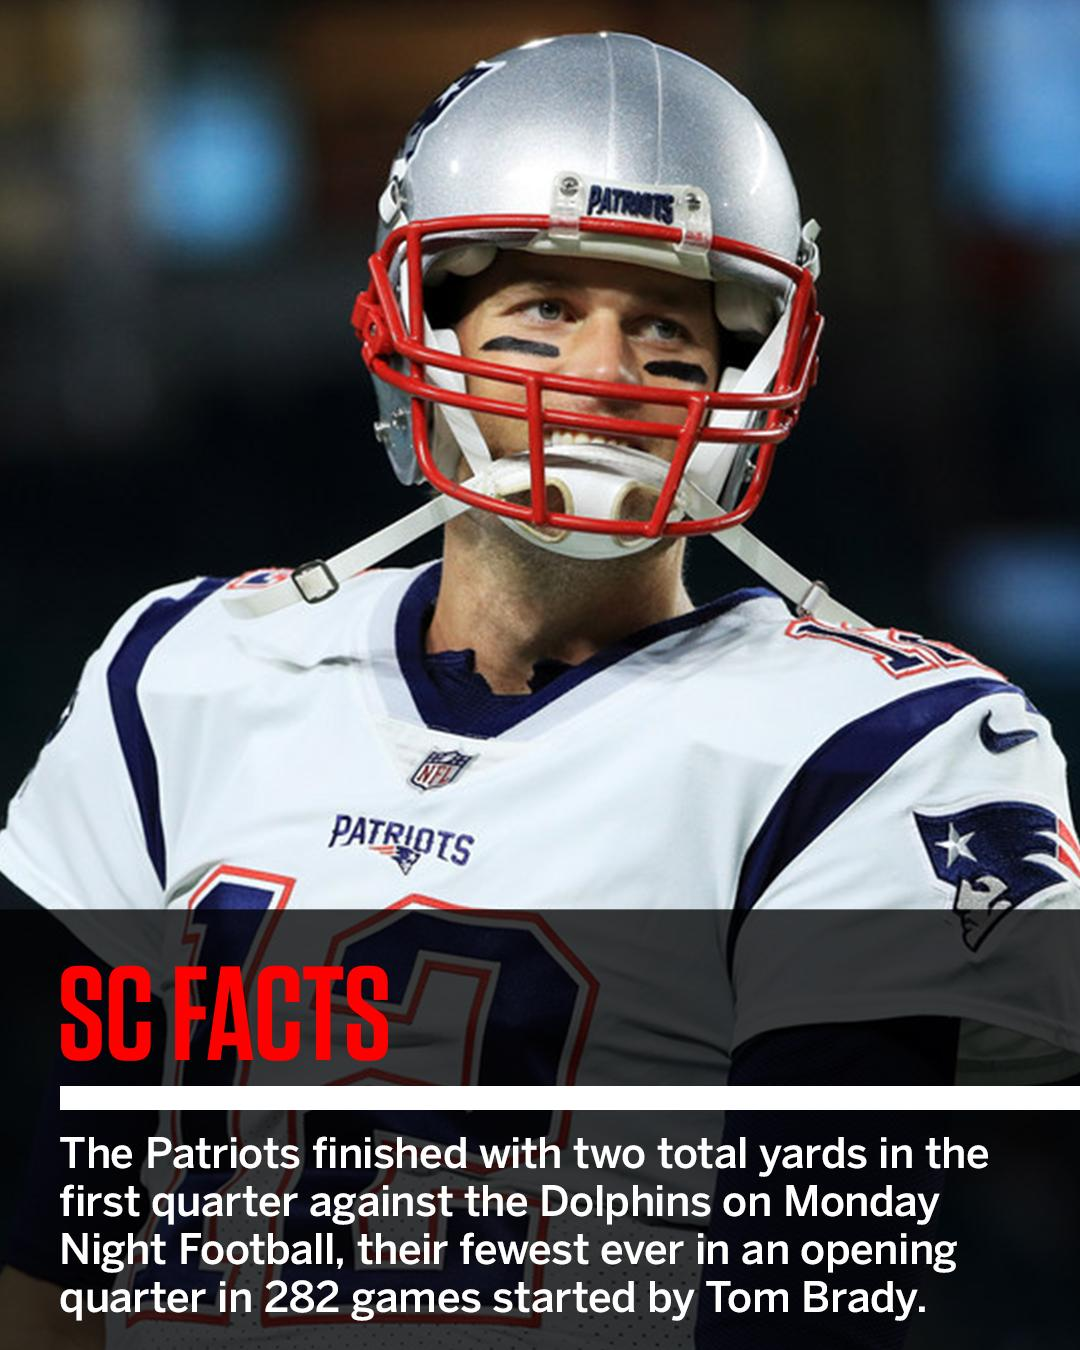 Tom Brady and the Patriots didn't look like themselves in the first quarter on Monday Night Football. #SCFacts https://t.co/k4tFoSXyC9